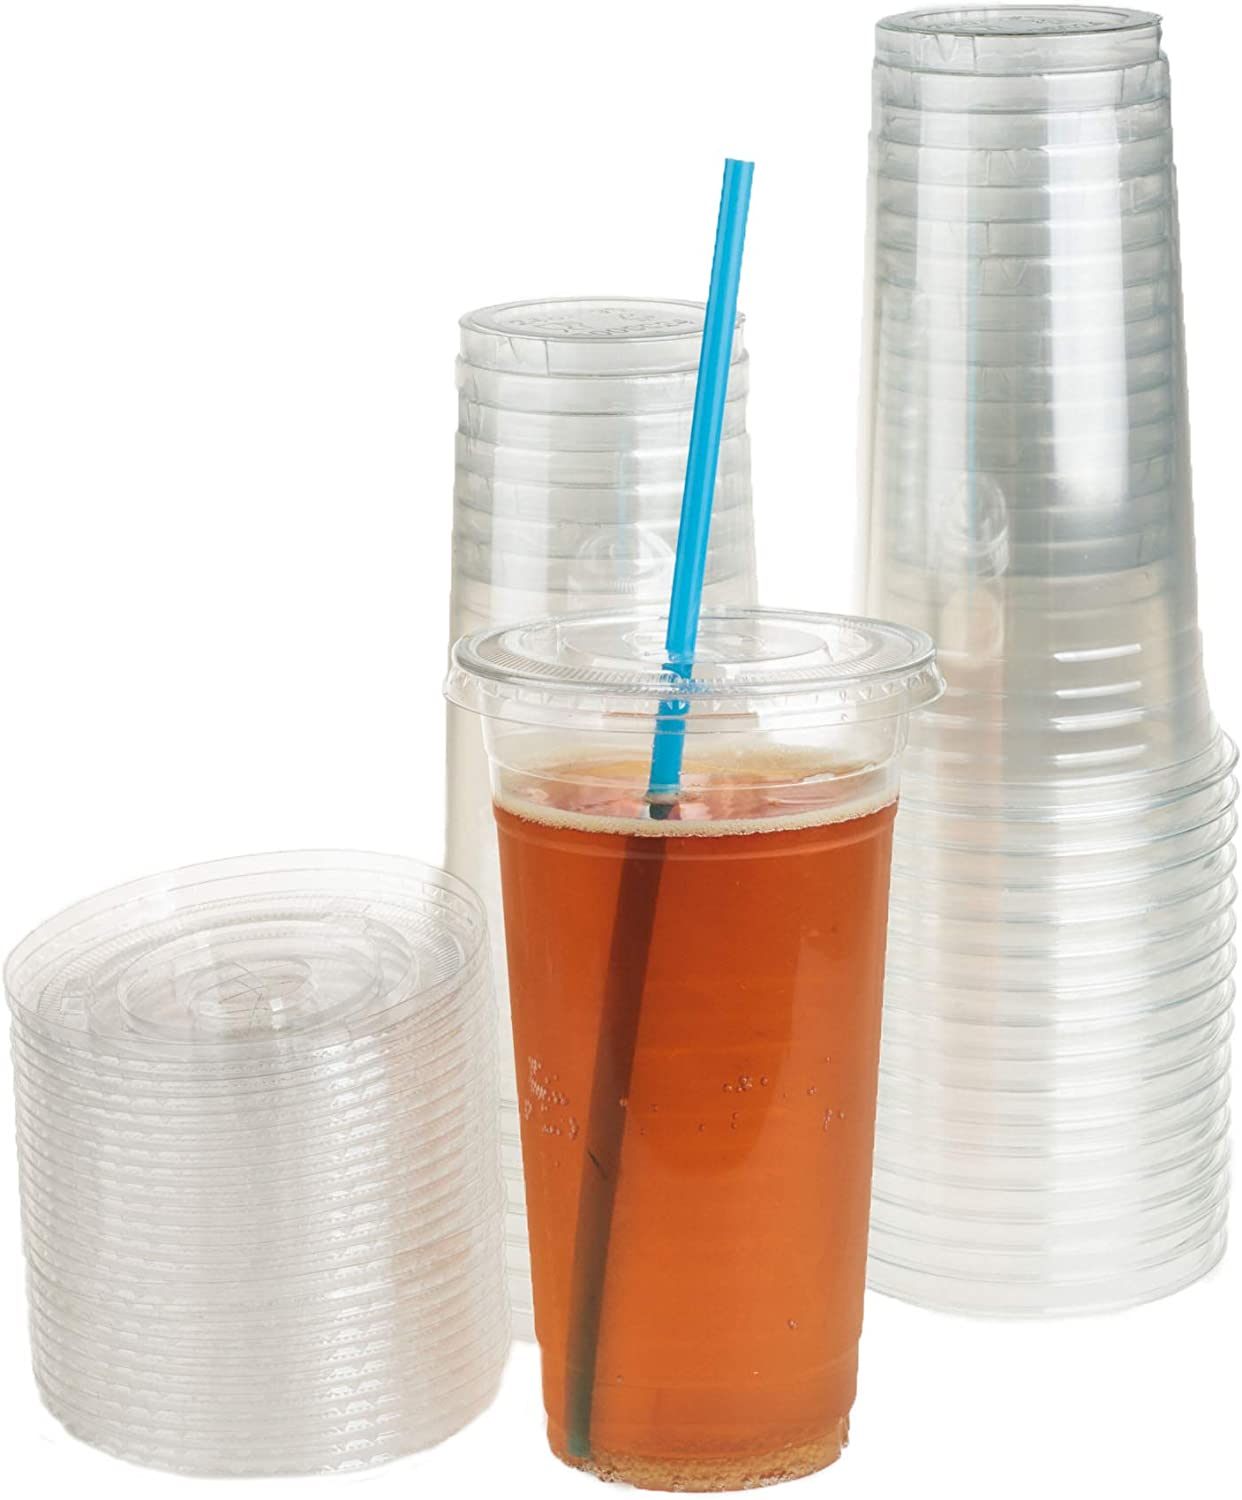 GOLDEN APPLE, 24oz-25sets. Clear Plastic Cups with Flat lids with Straw Slot